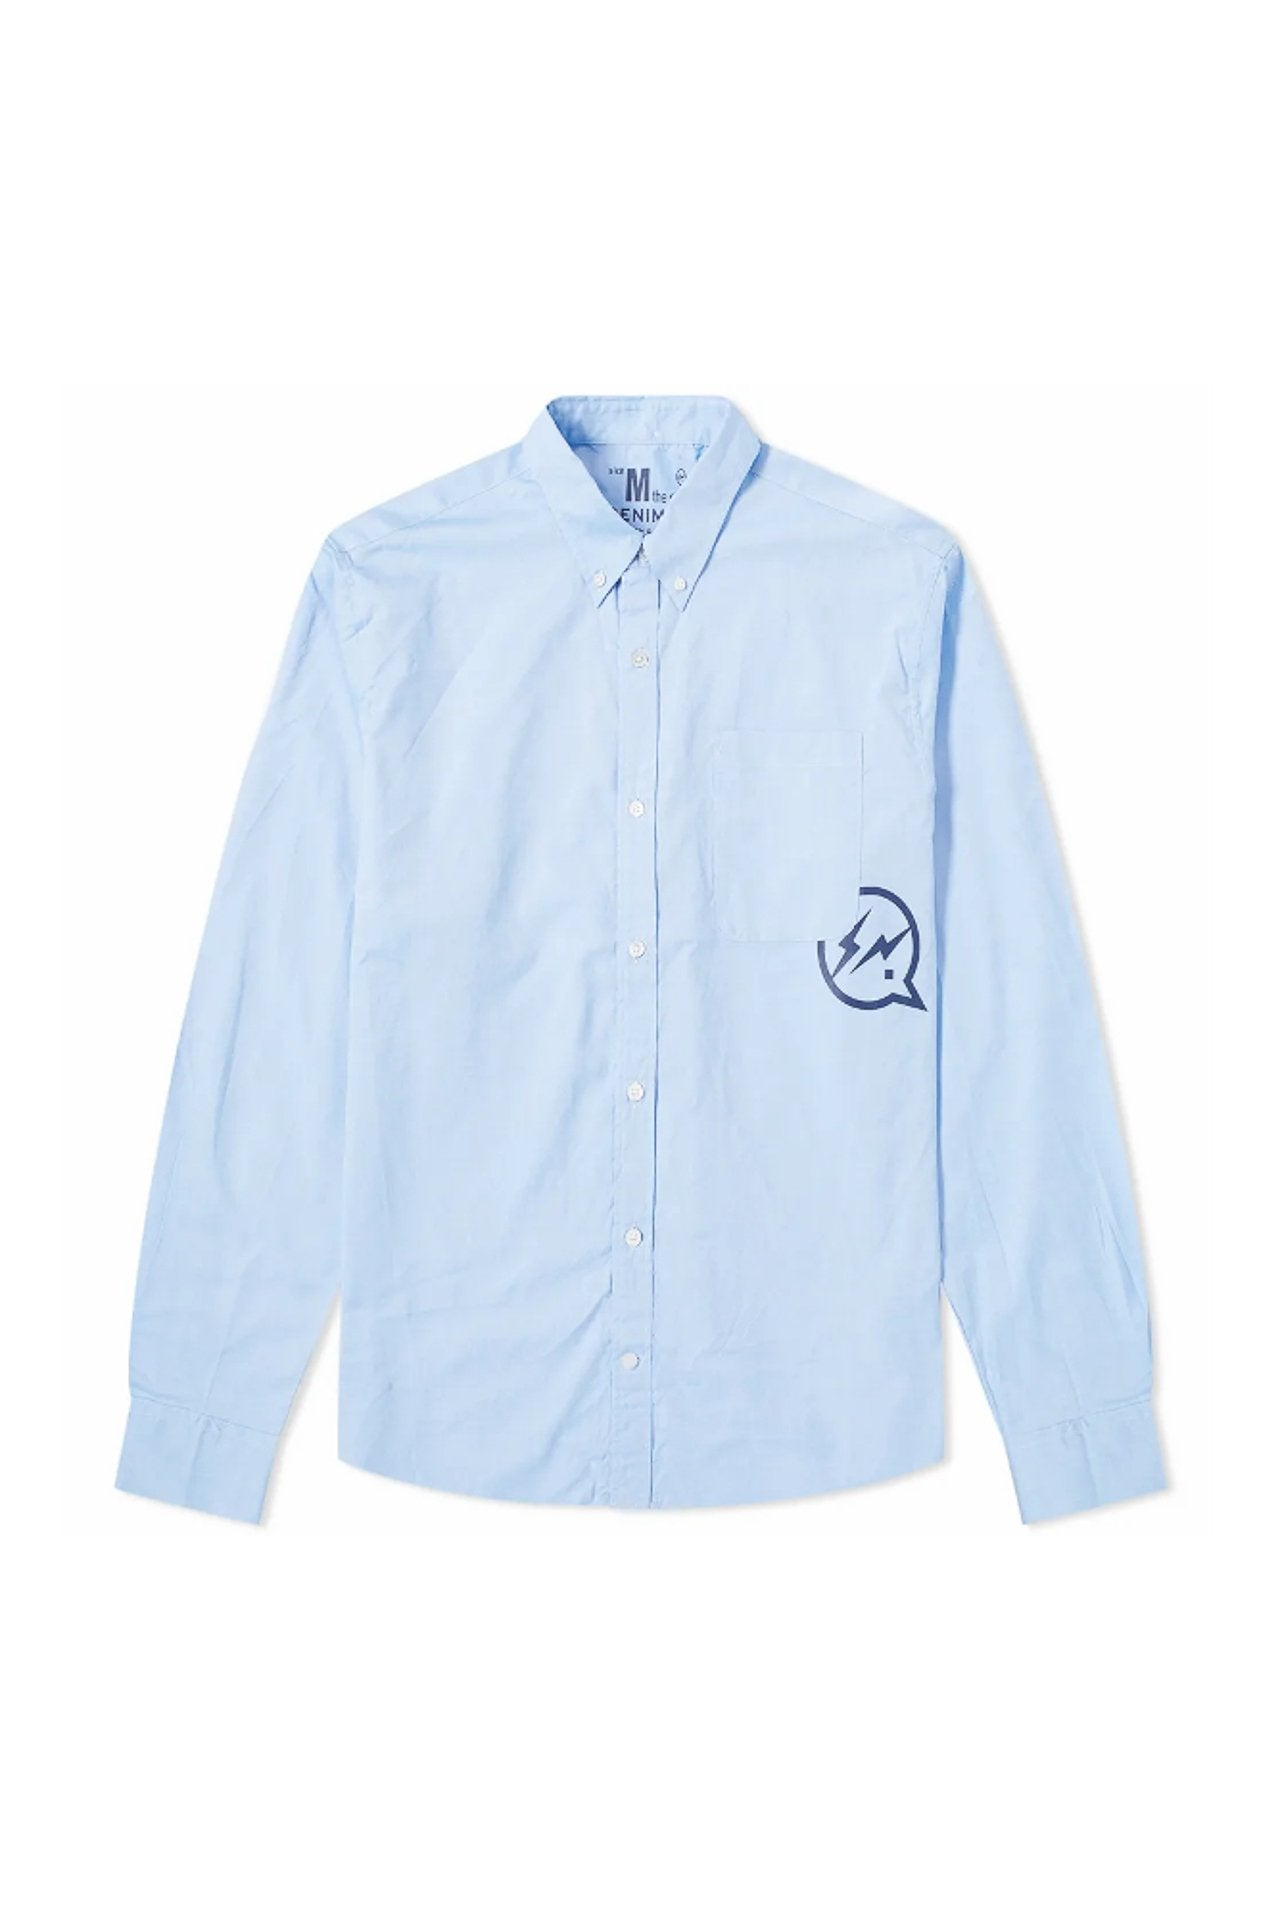 Denim By Vanquish & Fragment Broadcloth Shirt